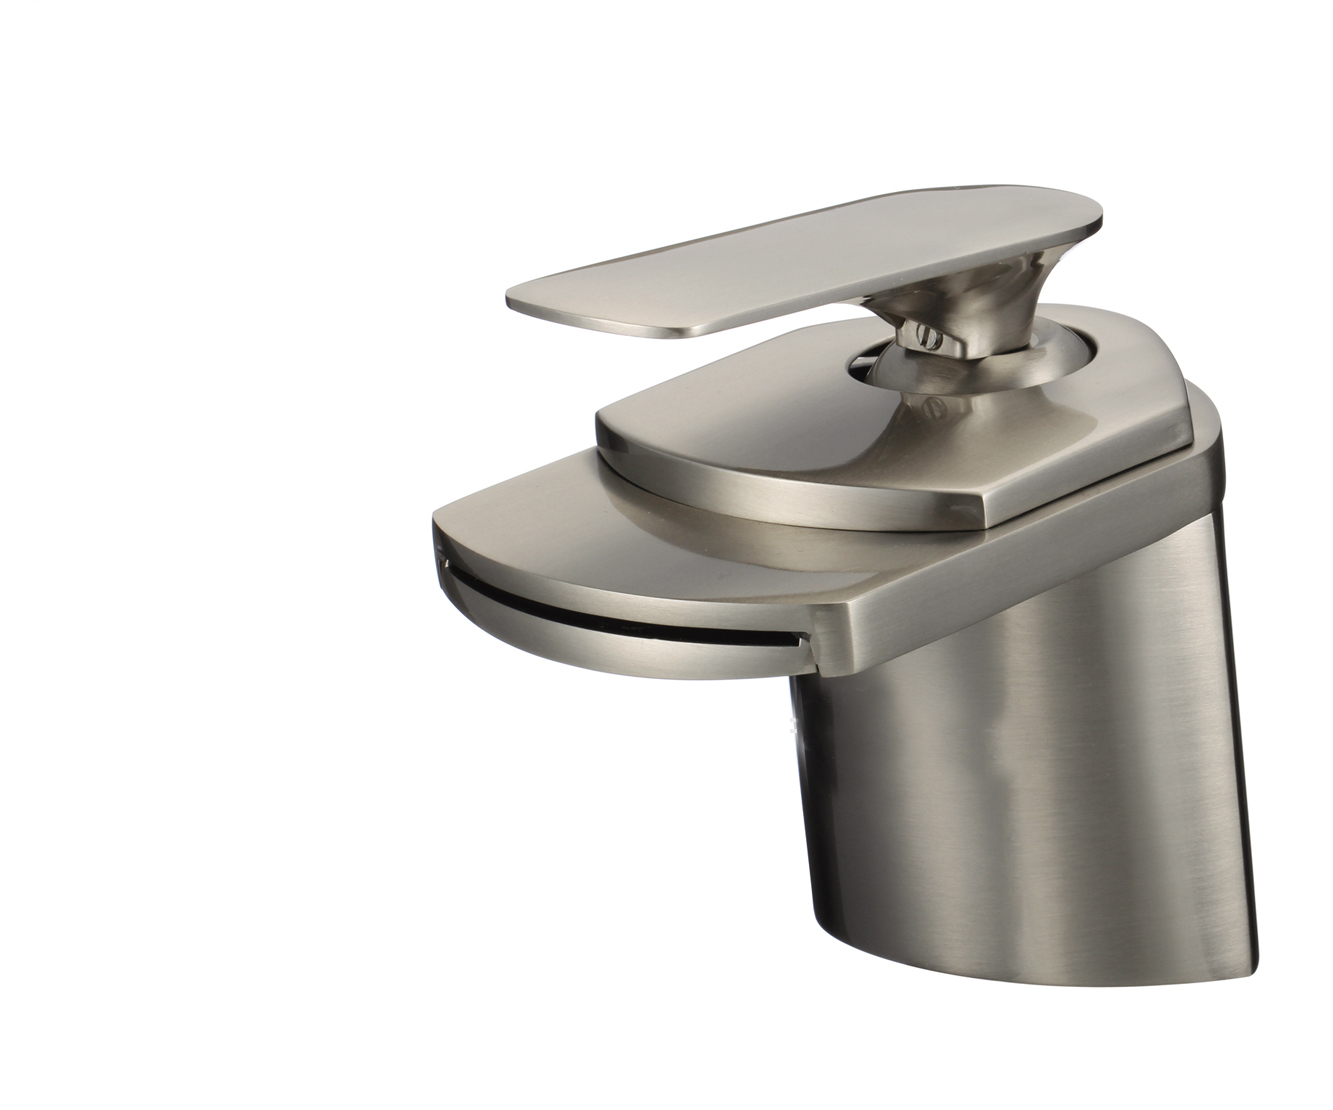 Taranto Single Handle Deck Mounted Bathroom Sink Faucet